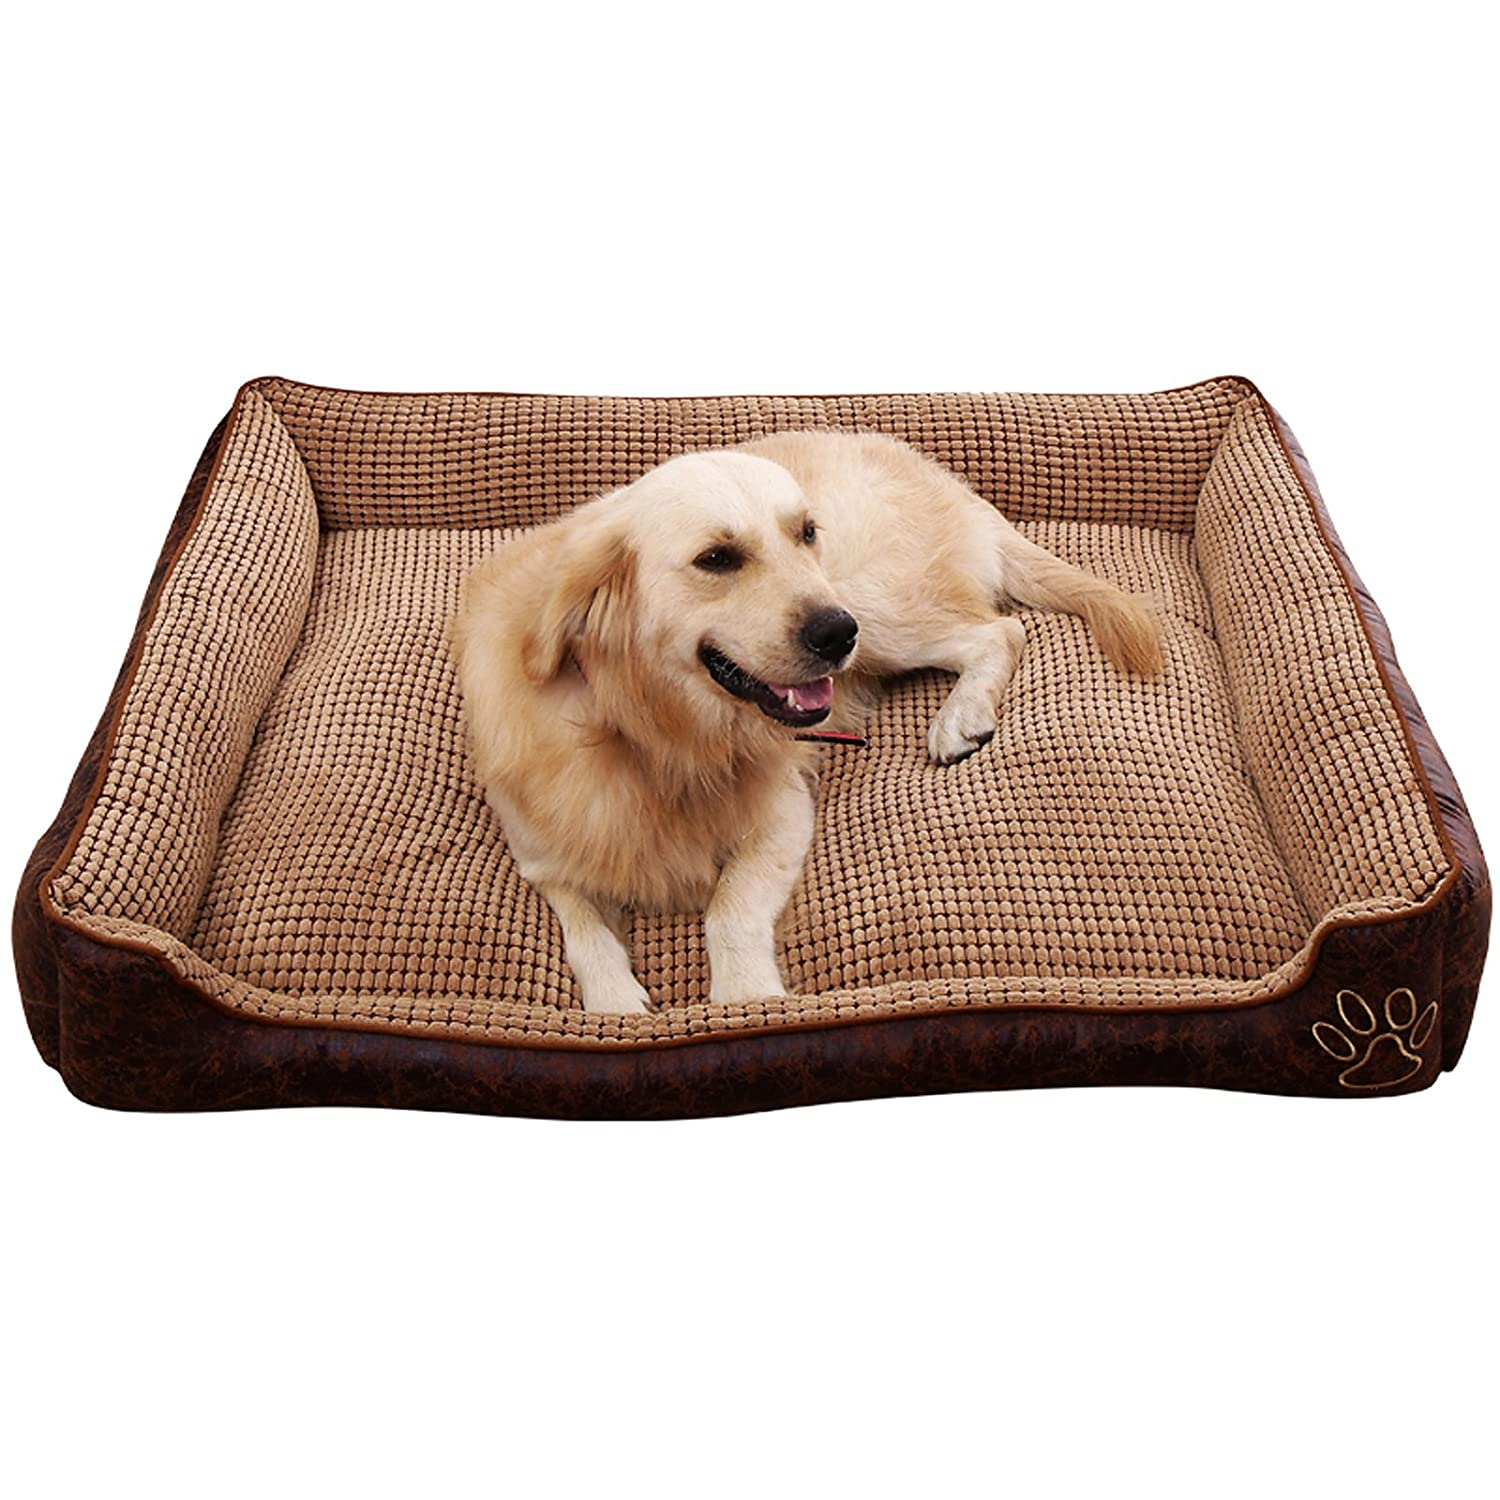 big your petsmart buy and tips sleep large extra ideas dog orthopedic xxl bm bed for beds exciting covered